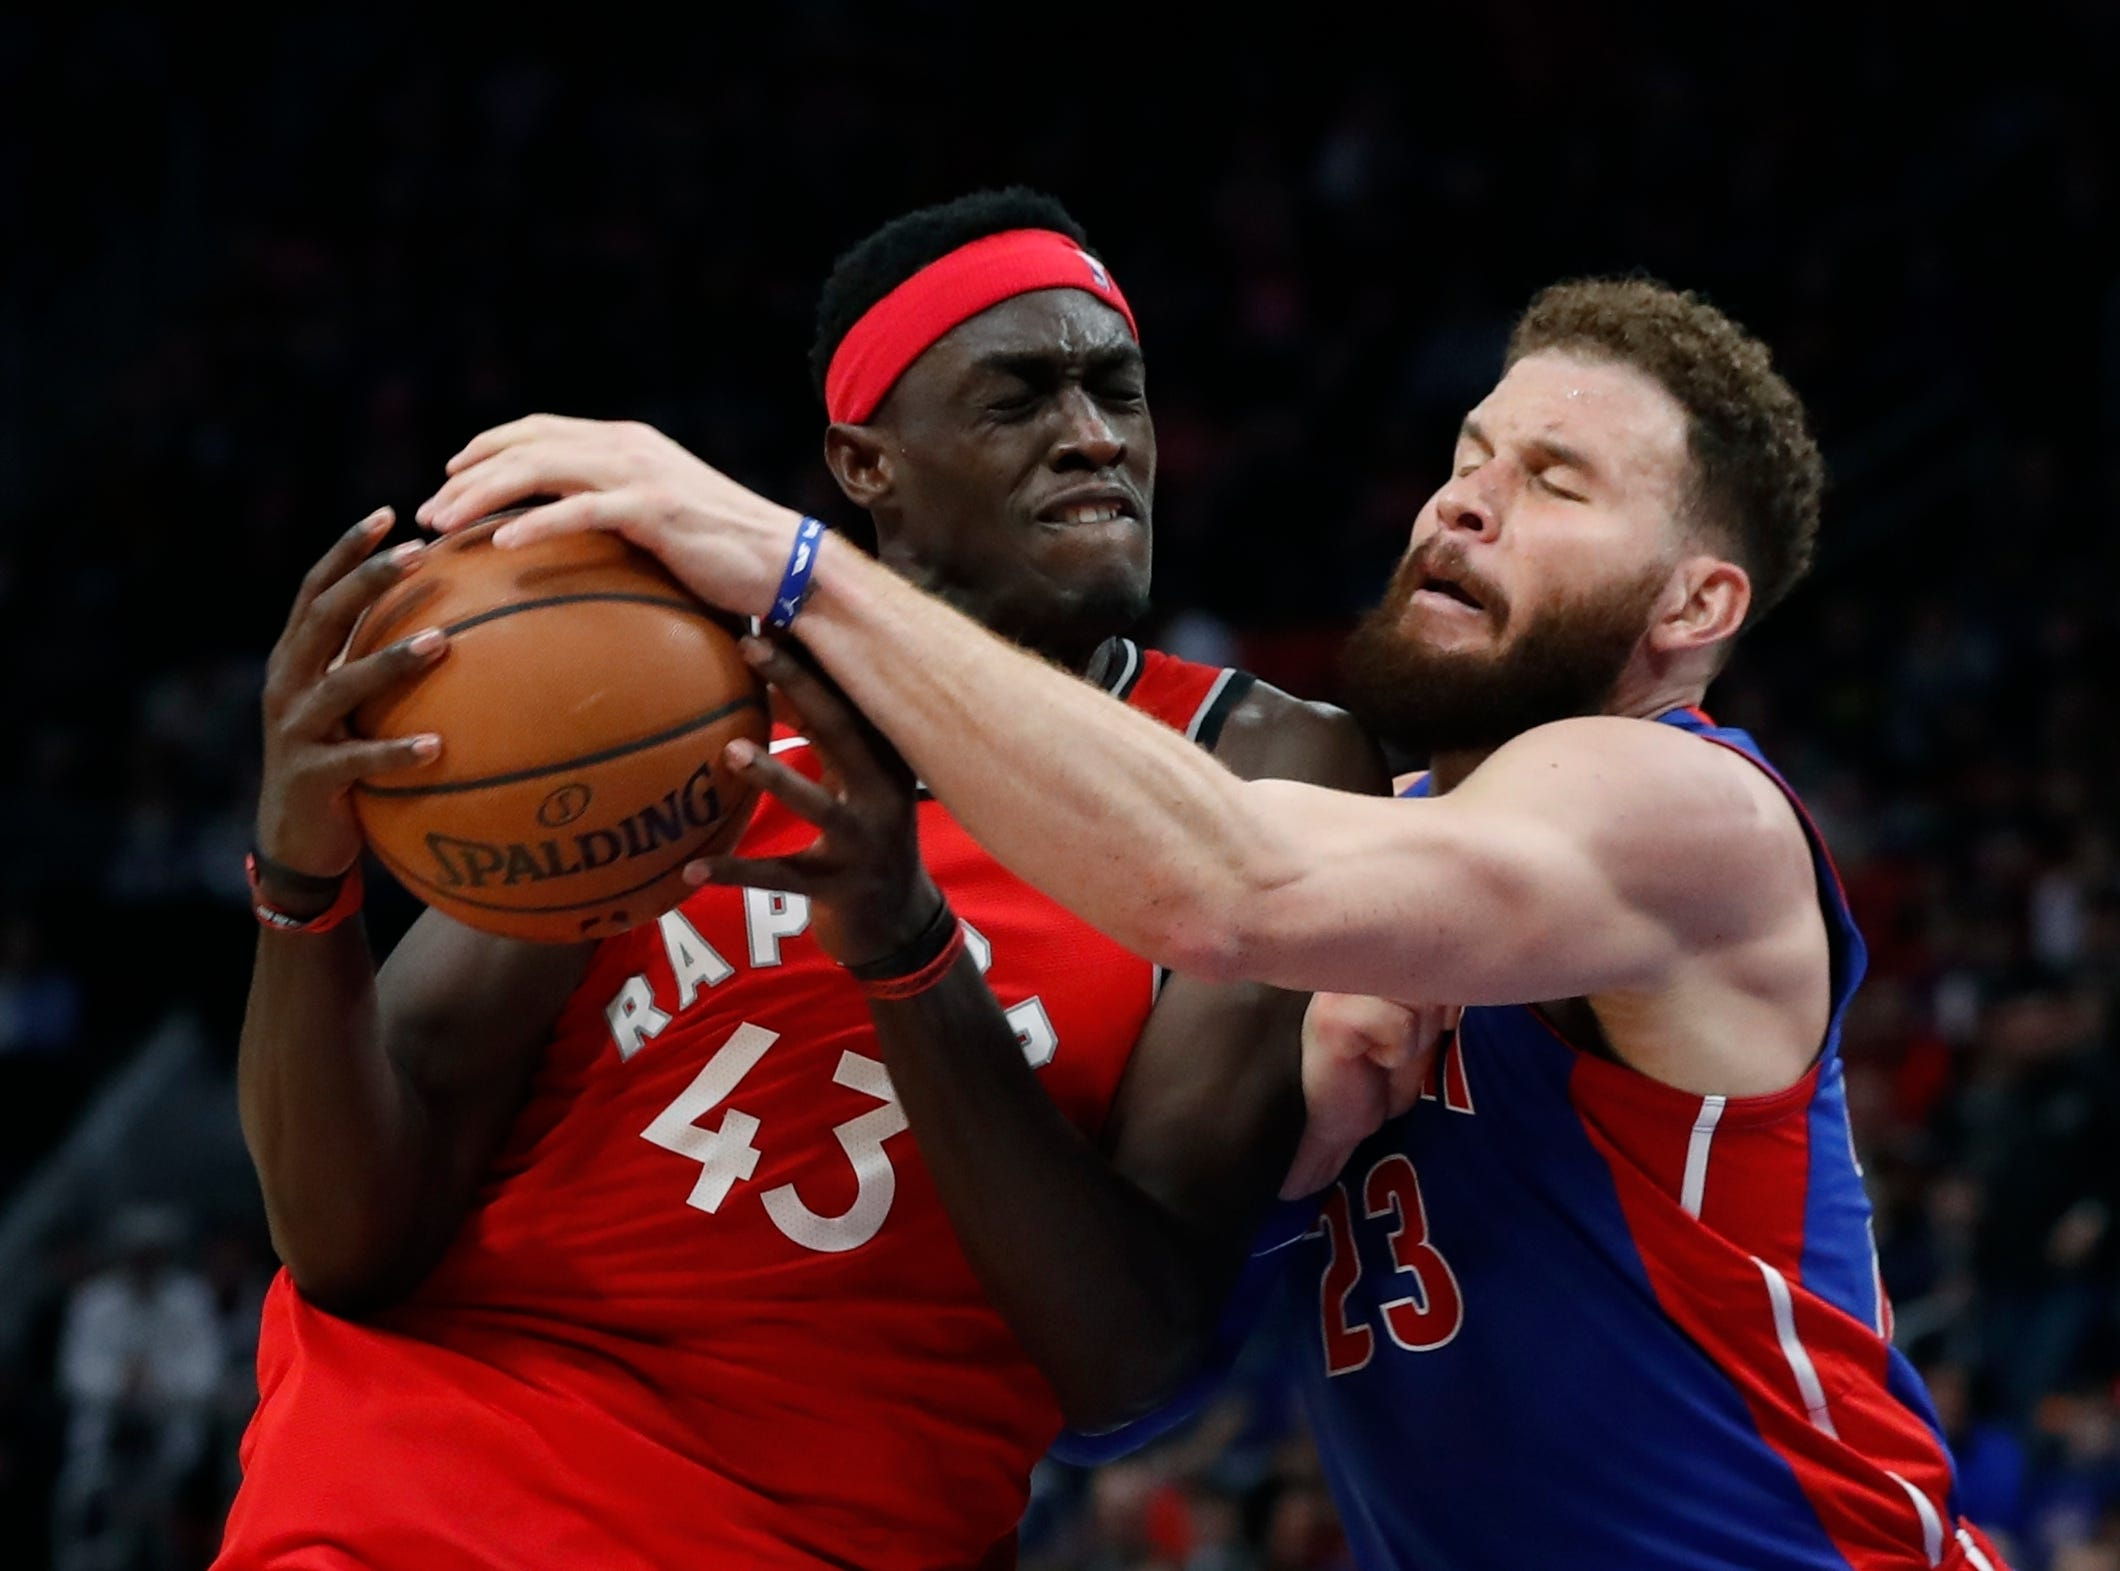 Detroit Pistons forward Blake Griffin knocks the ball away from Toronto Raptors forward Pascal Siakam (43) during the second half.